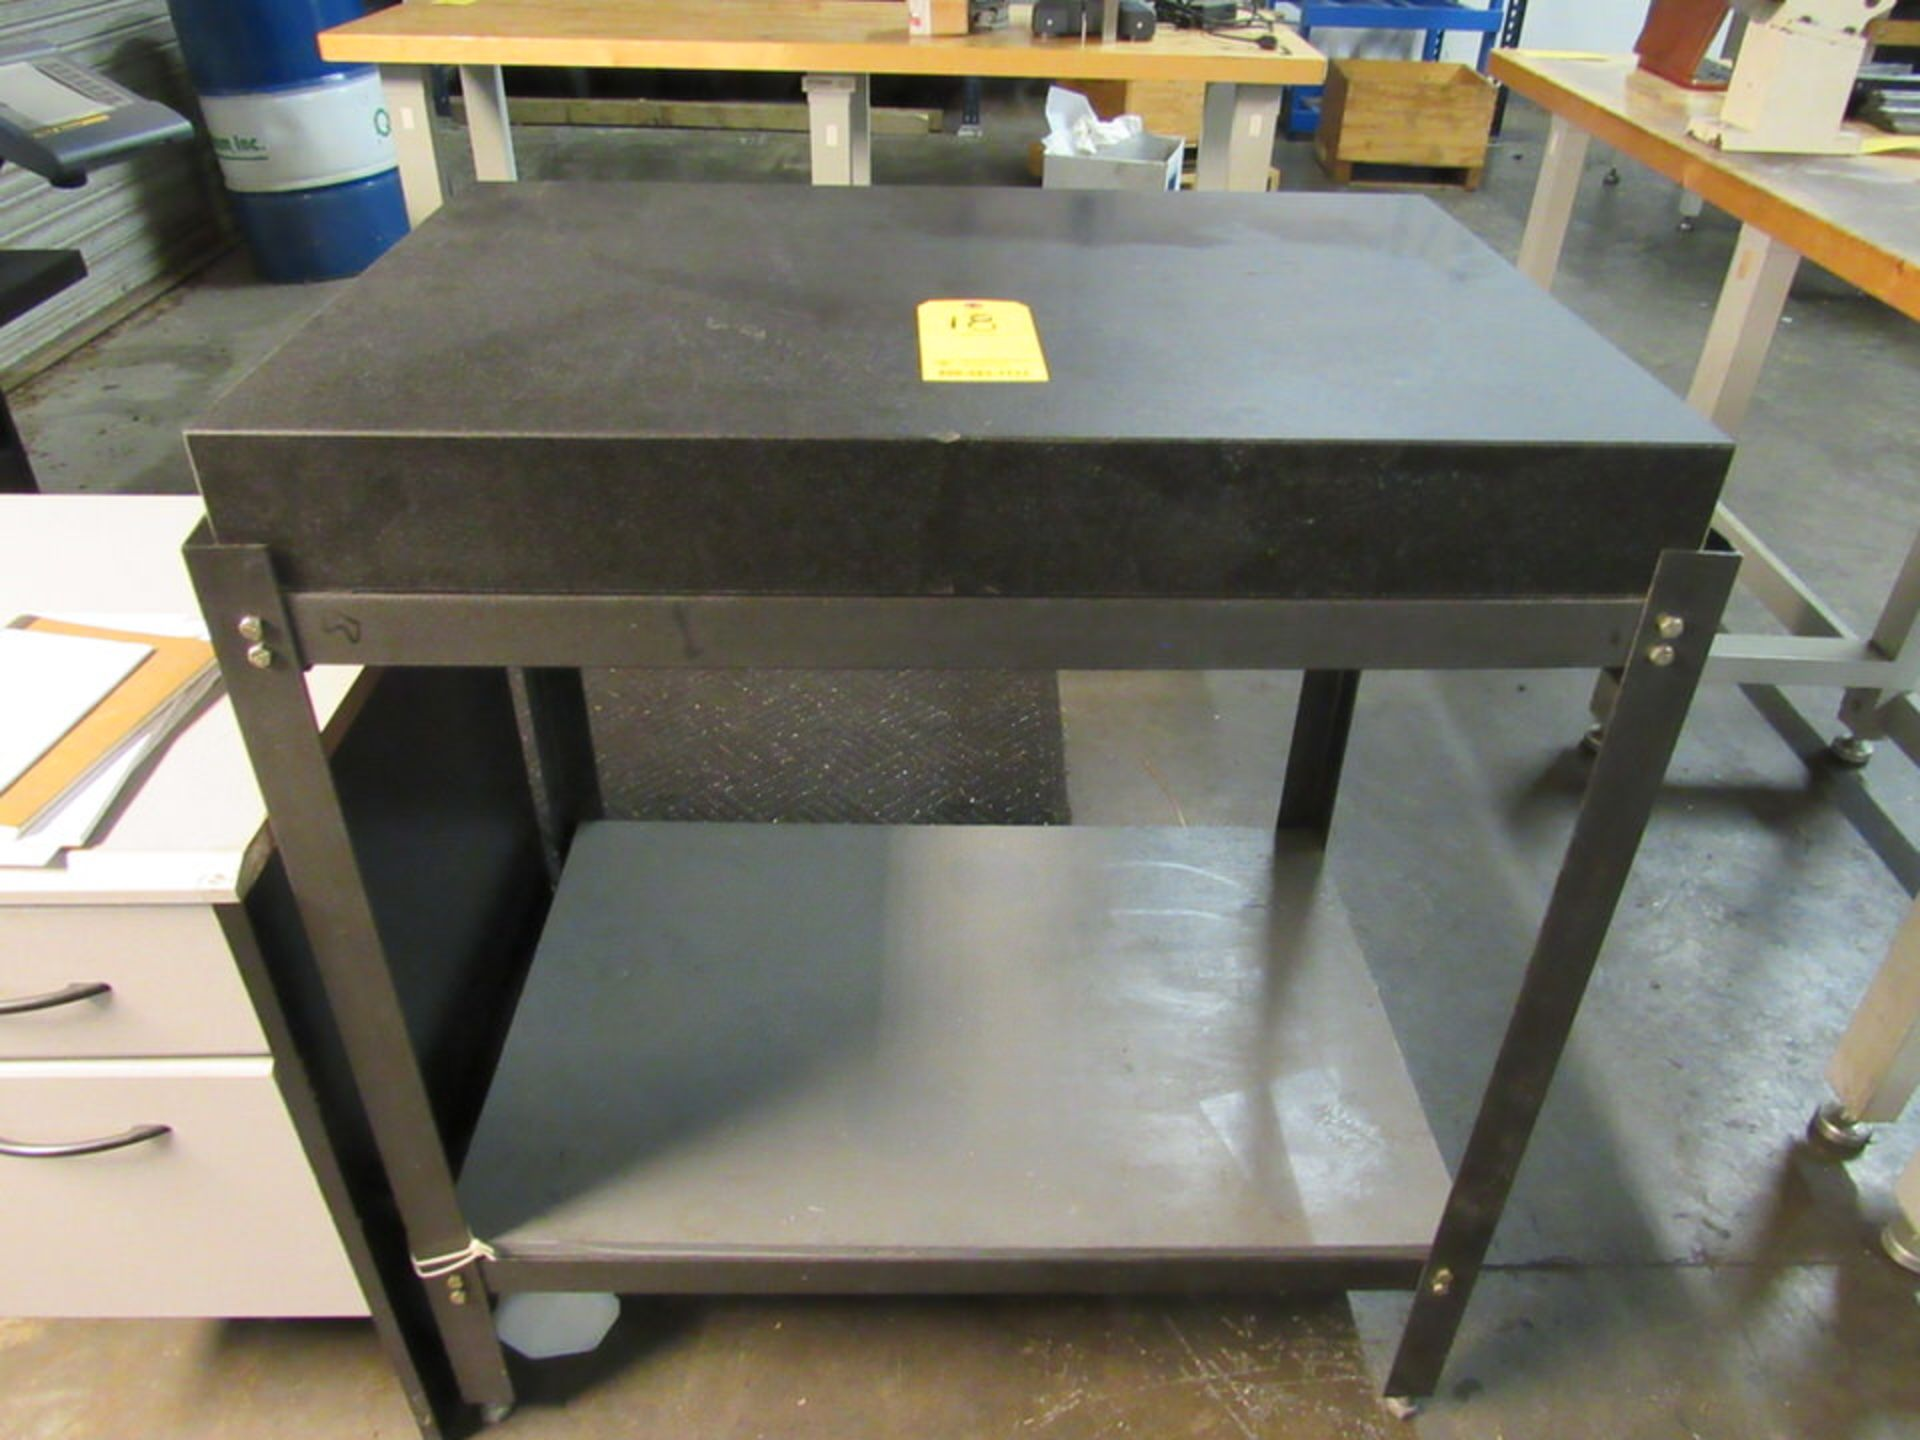 """Lot 18 - 24"""" x 36"""" x 4-1/4"""" thick Granite table on black table stand, oad: 25"""" x 37-1/2"""" x 41"""" high"""